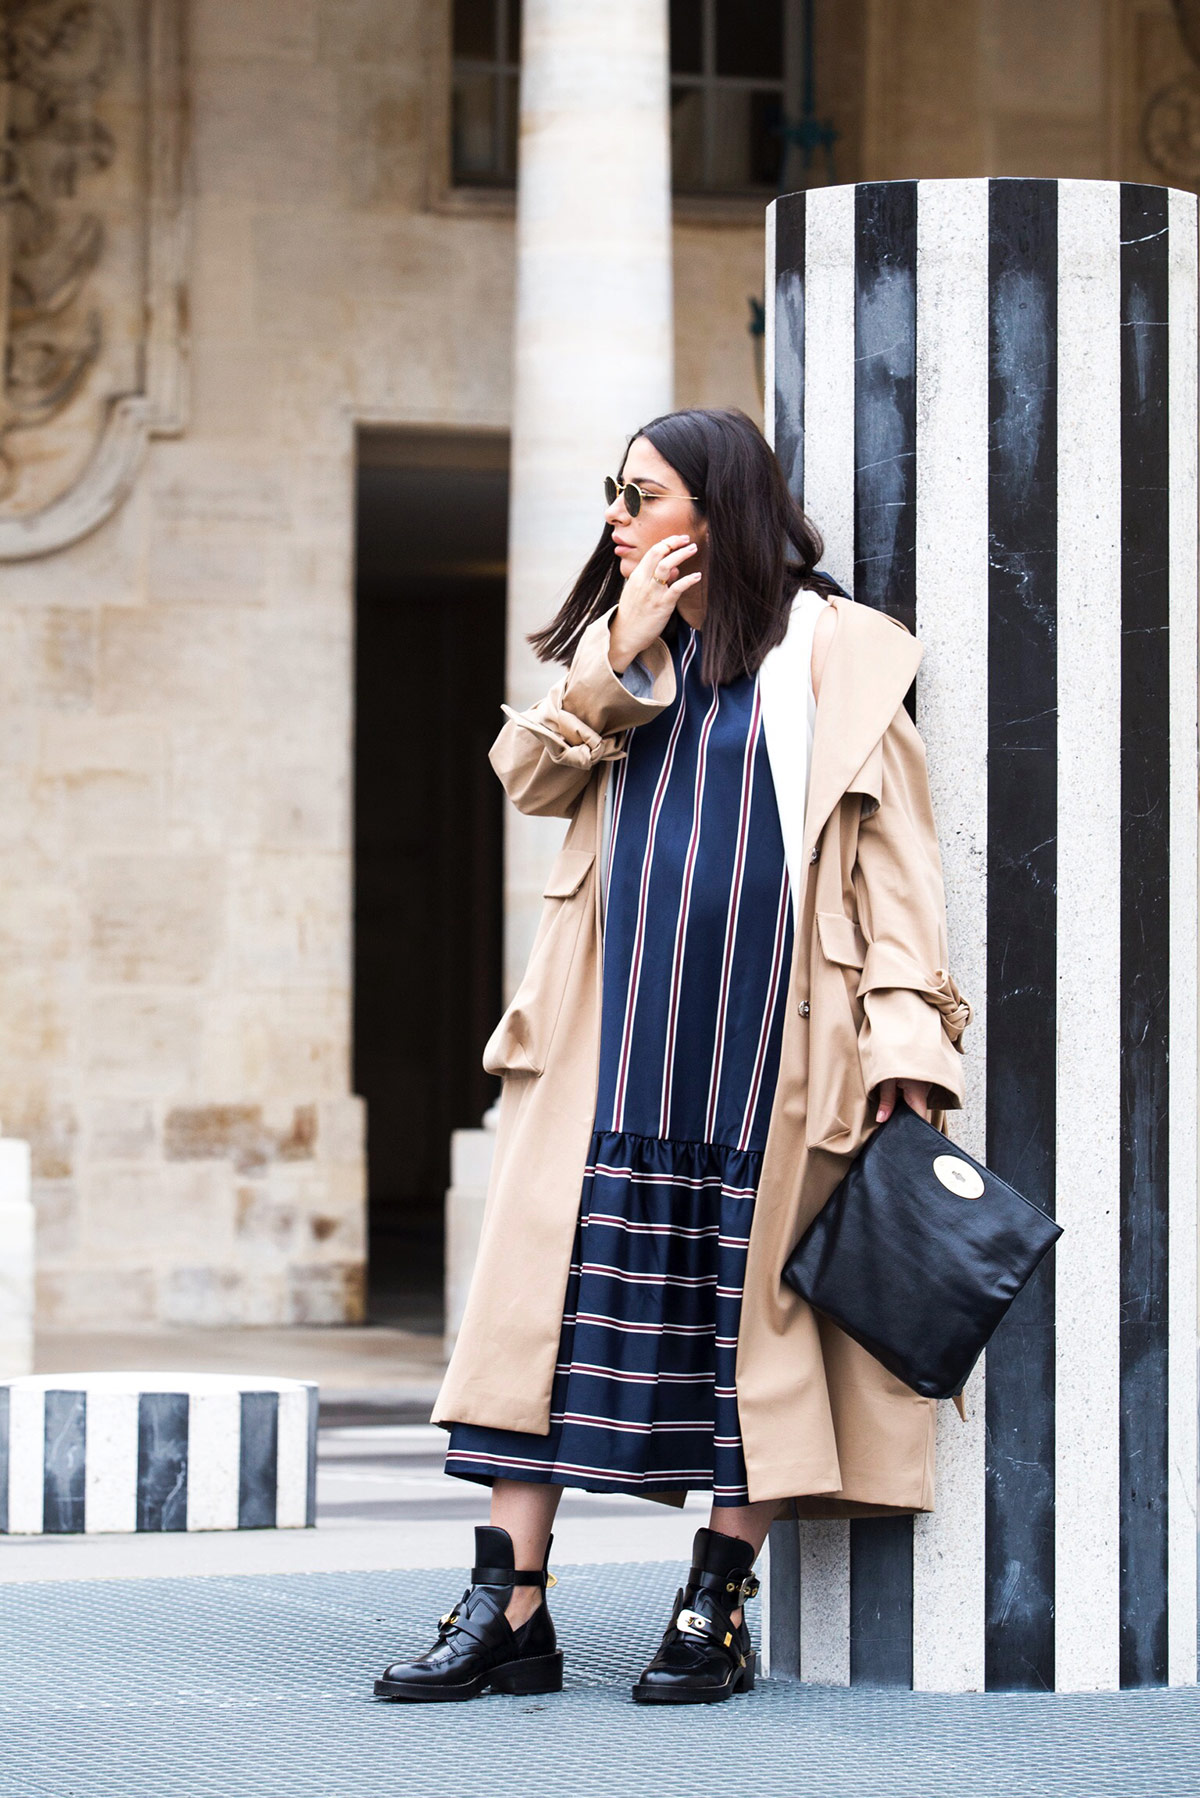 Stripes on stripes, trench coat and Balenciaga combat boots by Stella Asteria Fashion & Lifestyle Blogger during Paris Fashion Week - Paris Streetstyle and Pregnancy style inspiration - how to dress the bump in style